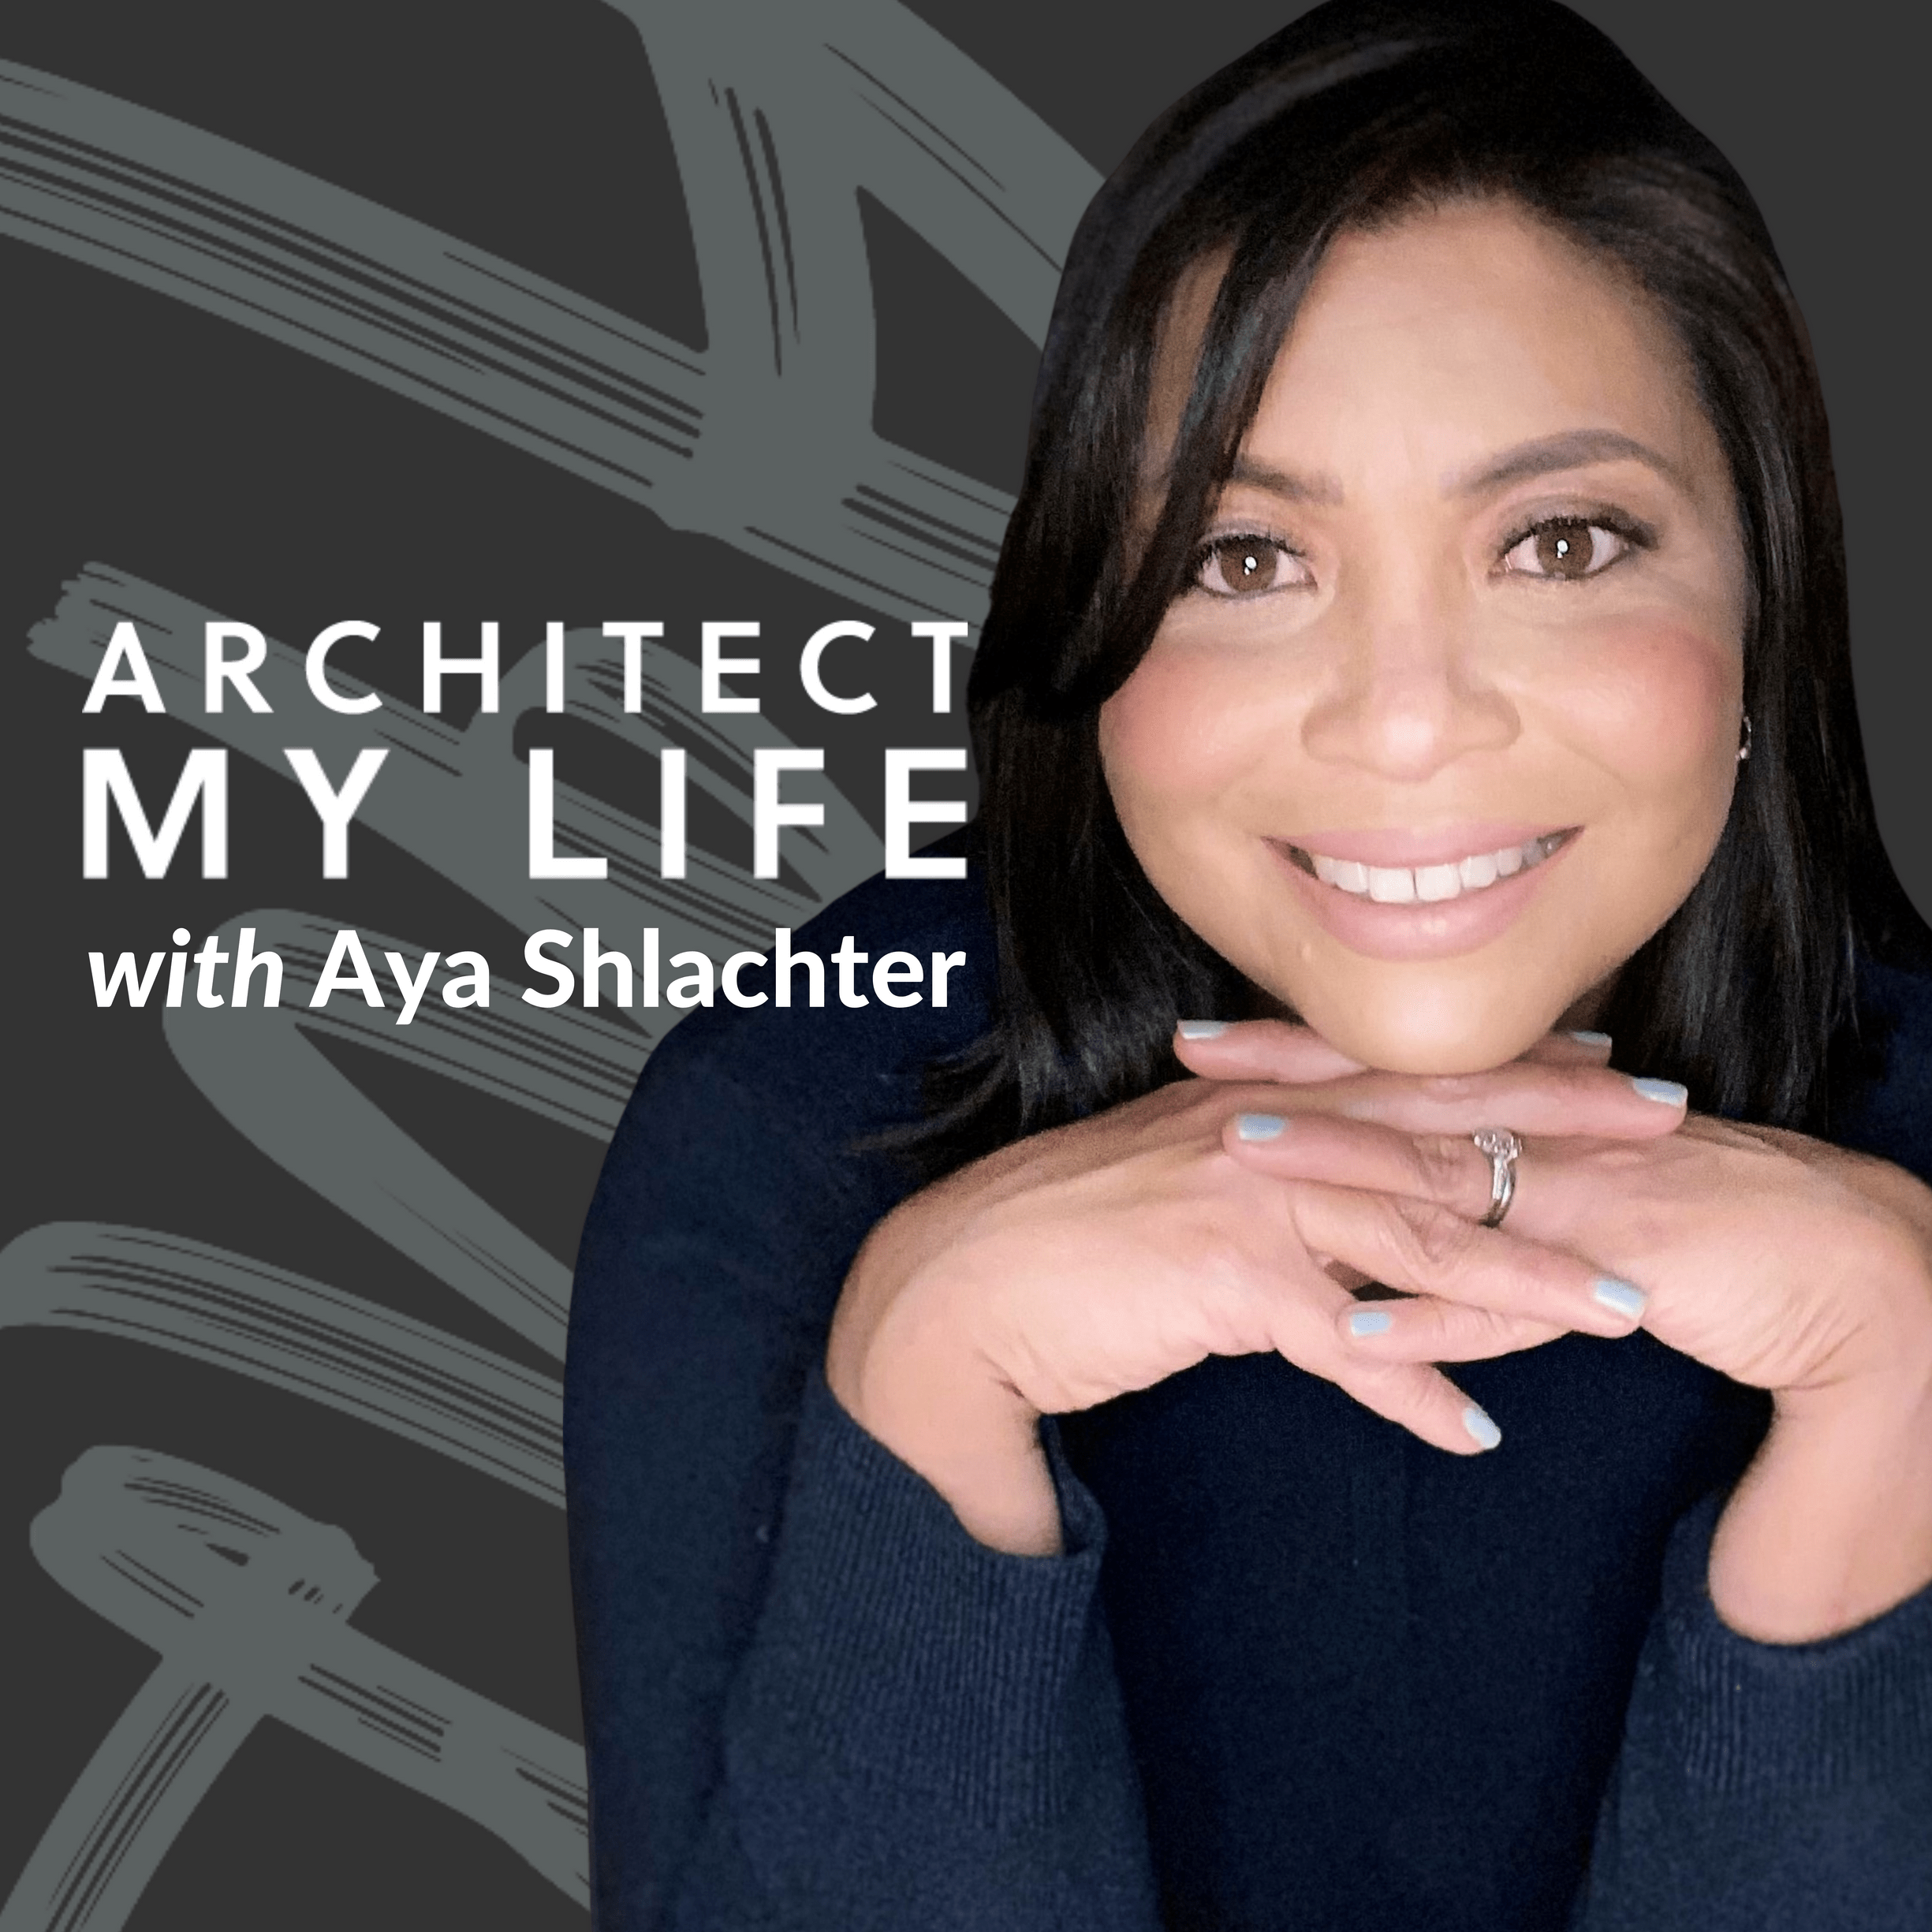 Artwork for podcast Architect My Life